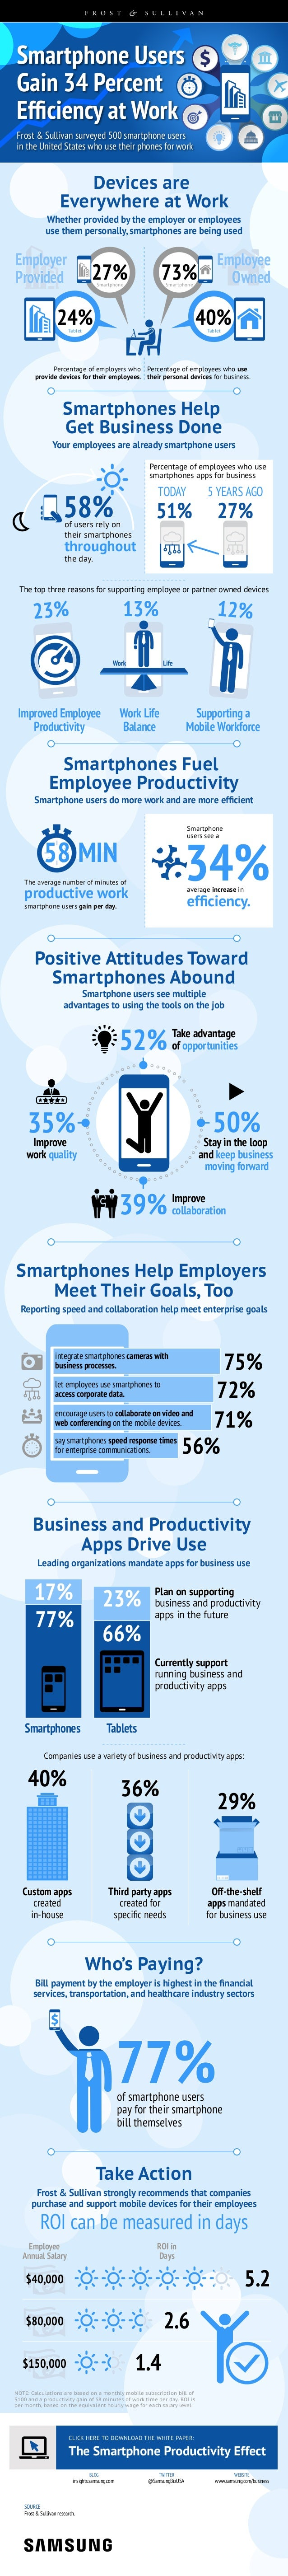 Smartphone Users Frost & Sullivan surveyed 500 smartphone users in the United States who use their phones for work Frost &...